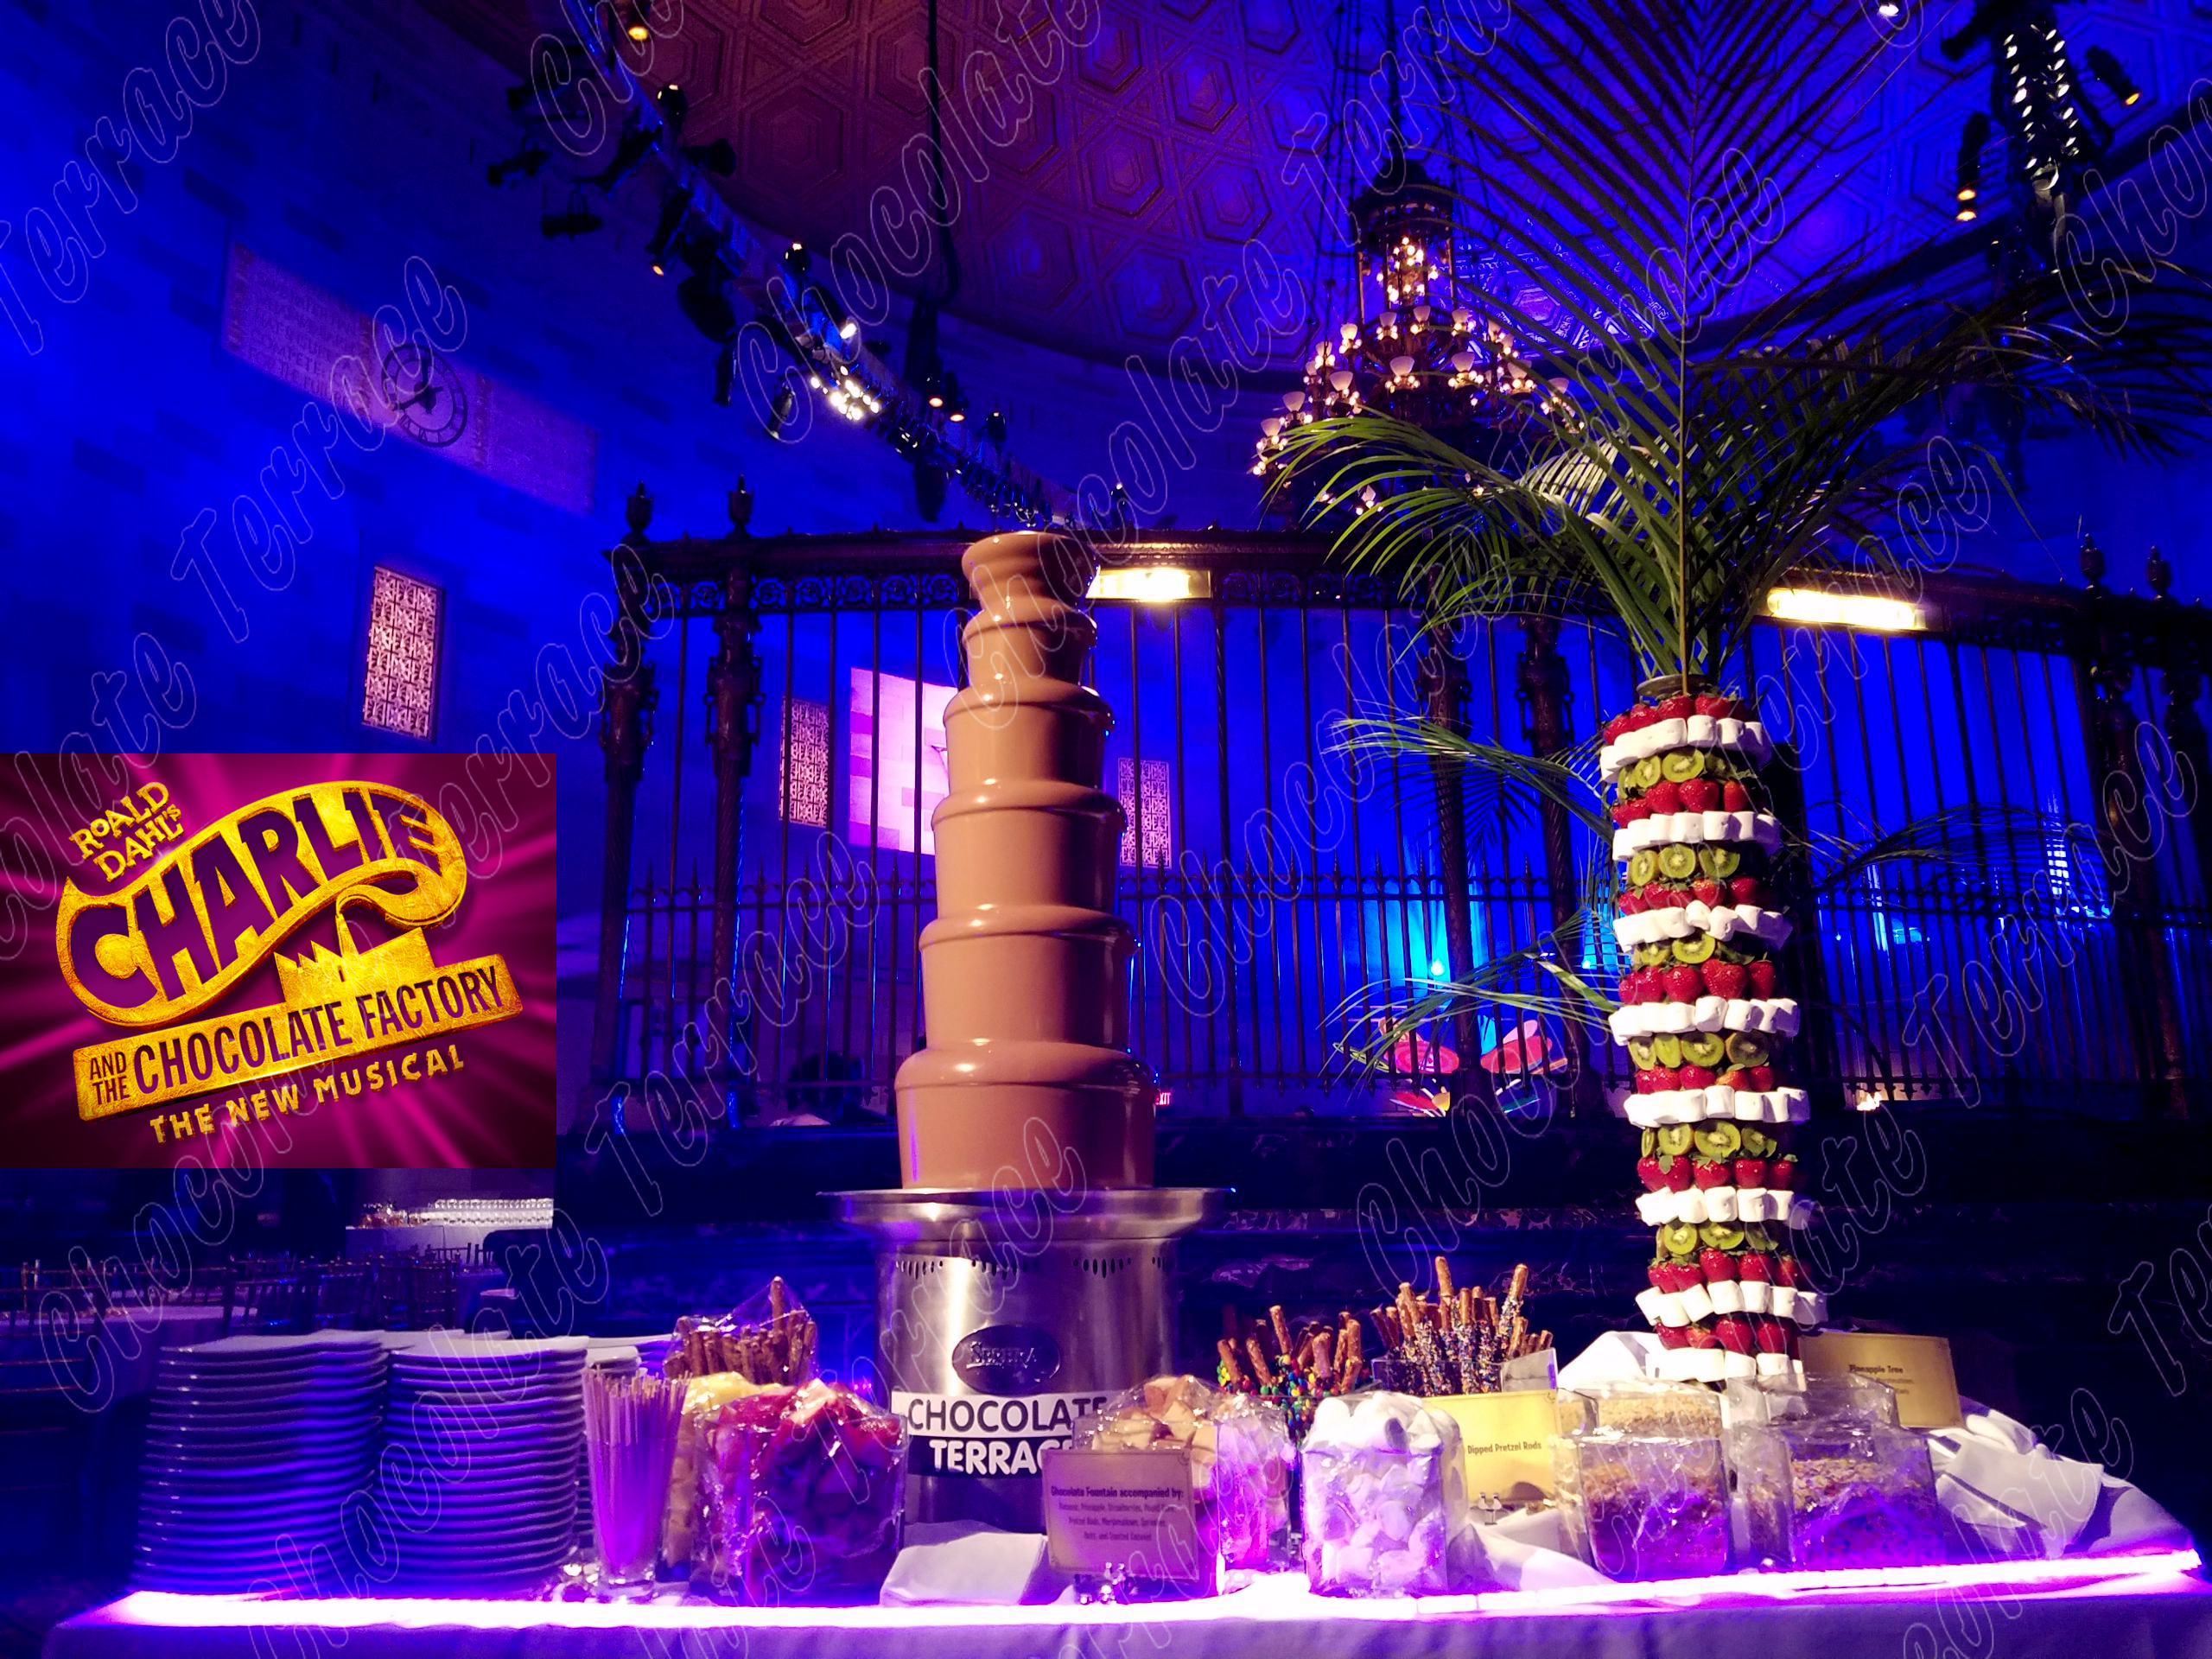 Charlie_and_chocolate_factory_show